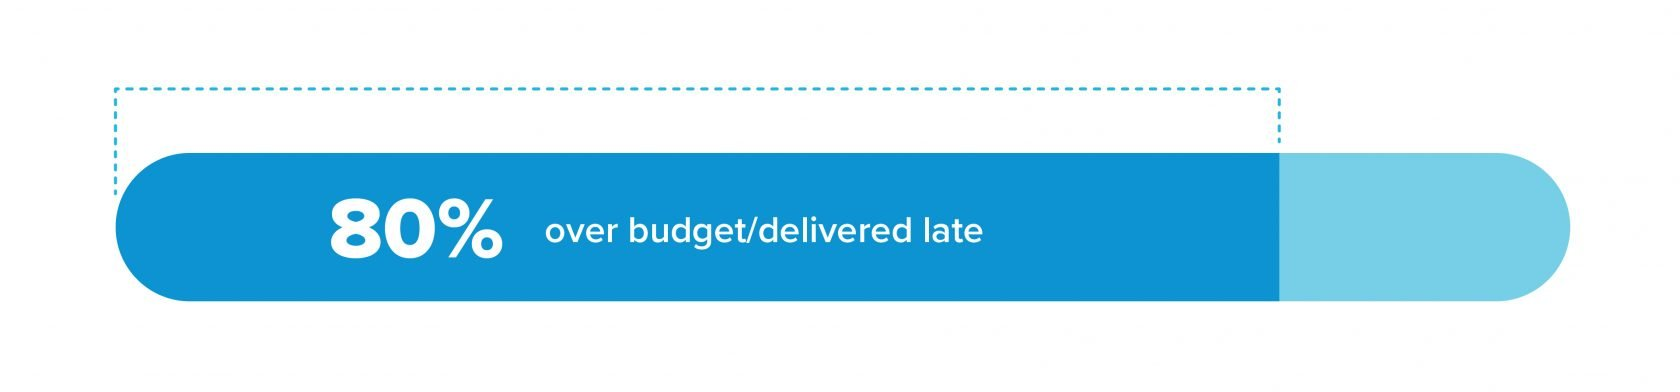 Bar chart showing 80% of projects are over budget and delivered late